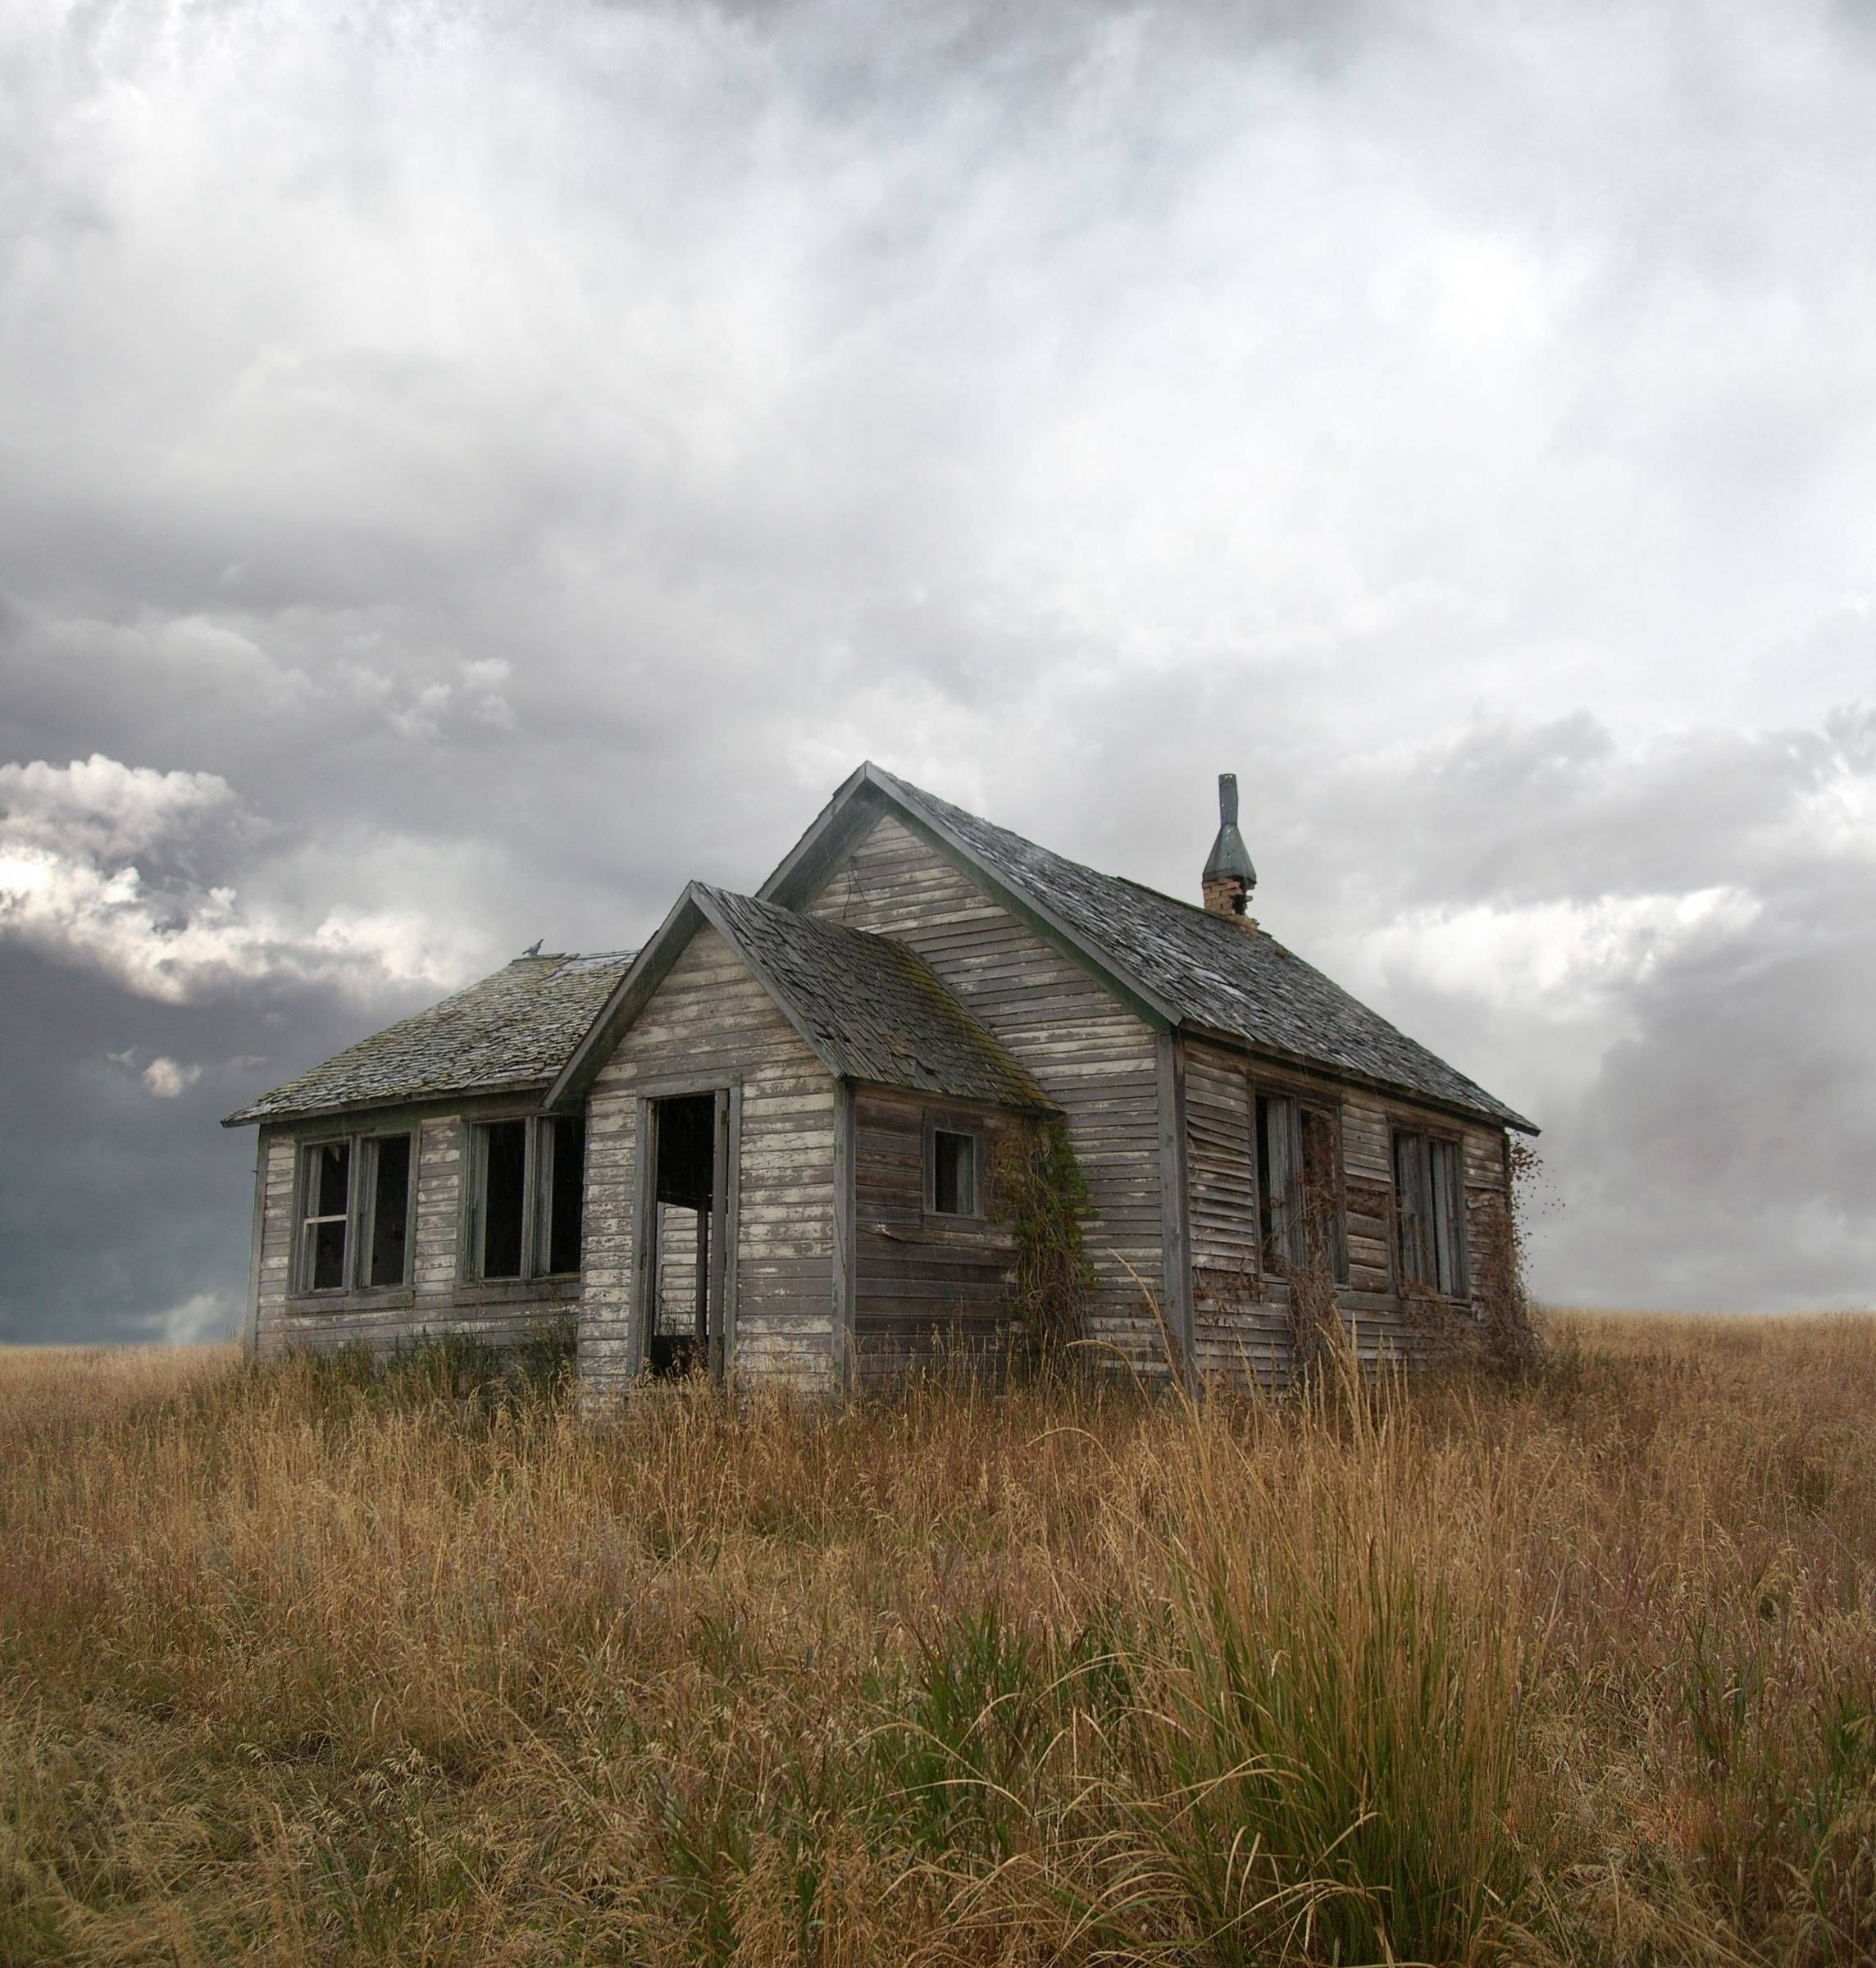 Abandoned house in the middle of nowhere. For highest